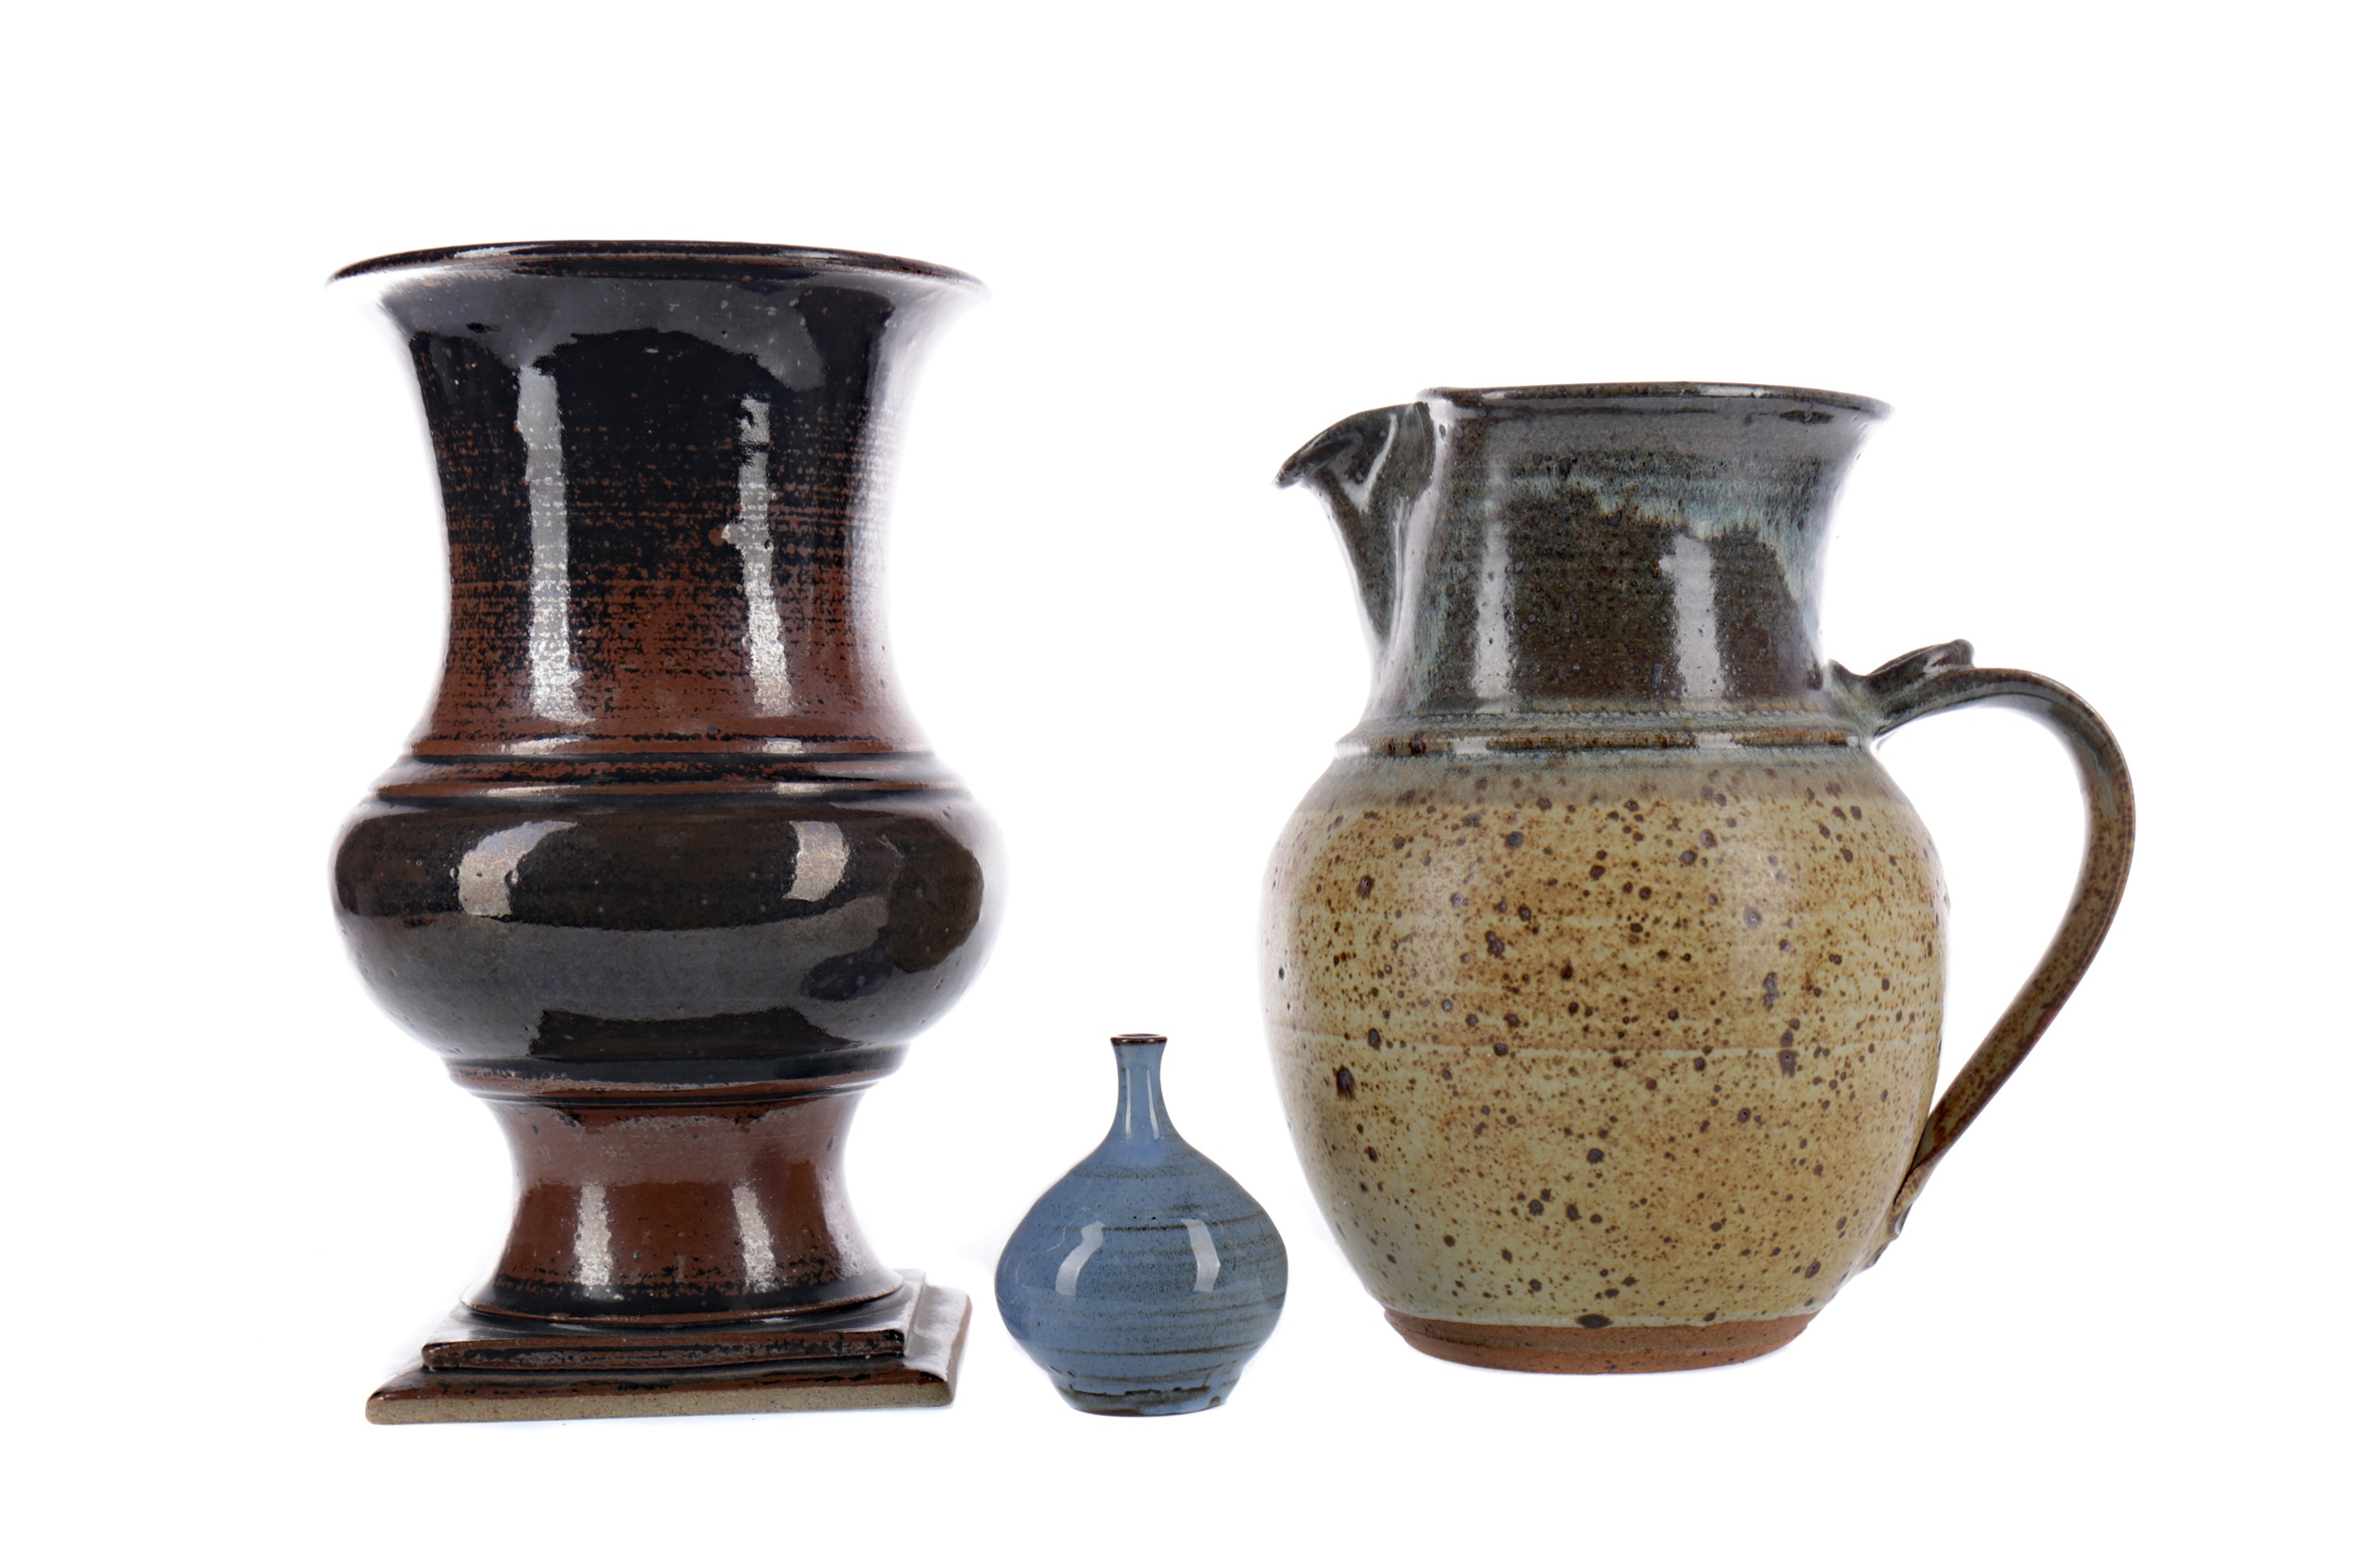 A JANET ADAM STUDIO POTTERY STONEWARE VASE, ALONG WITH TWO OTHER VASES AND A JUG